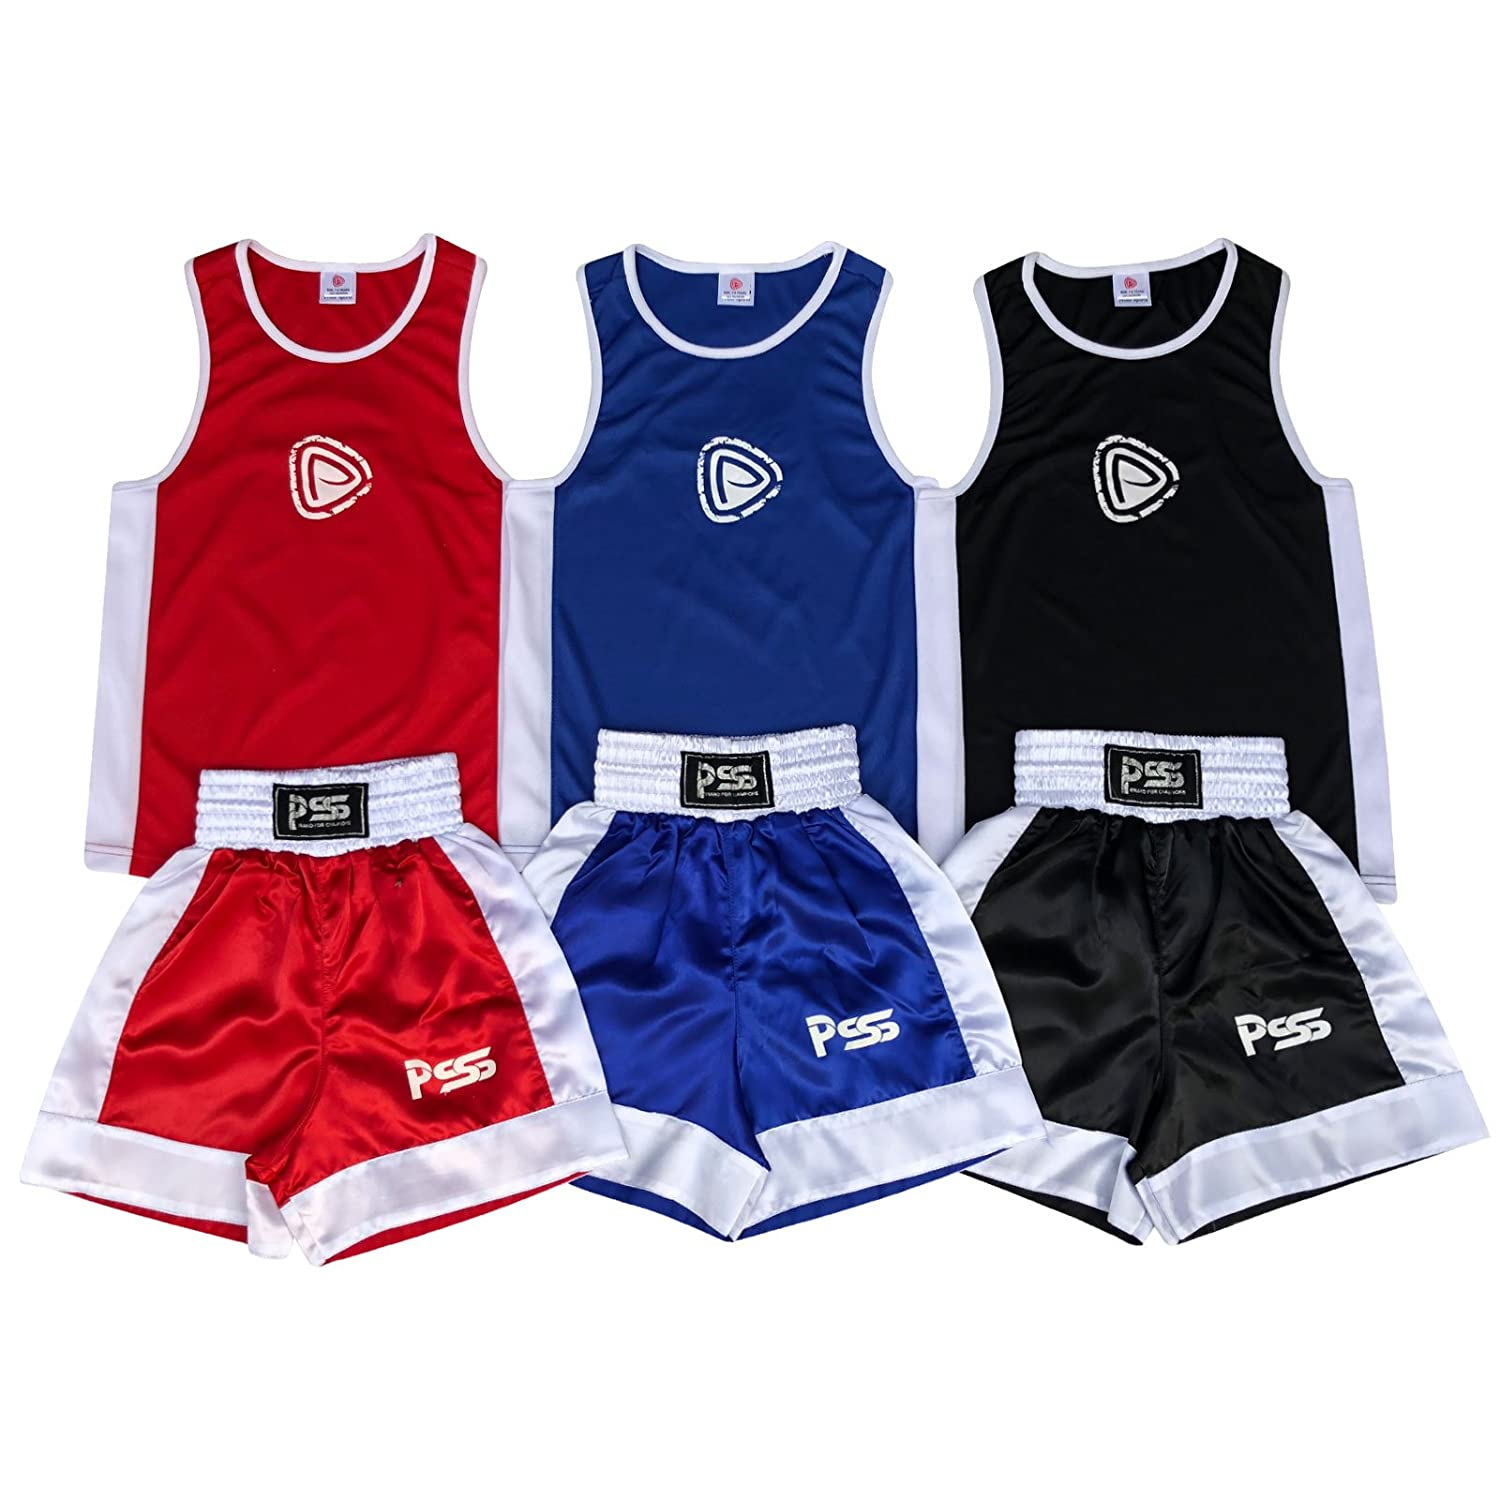 Prime MMA Kids Boxing Uniform Set Shorts & Top 2個のセットサテン生地3 14年に B01LZ0G27X レッド 9-10 Years